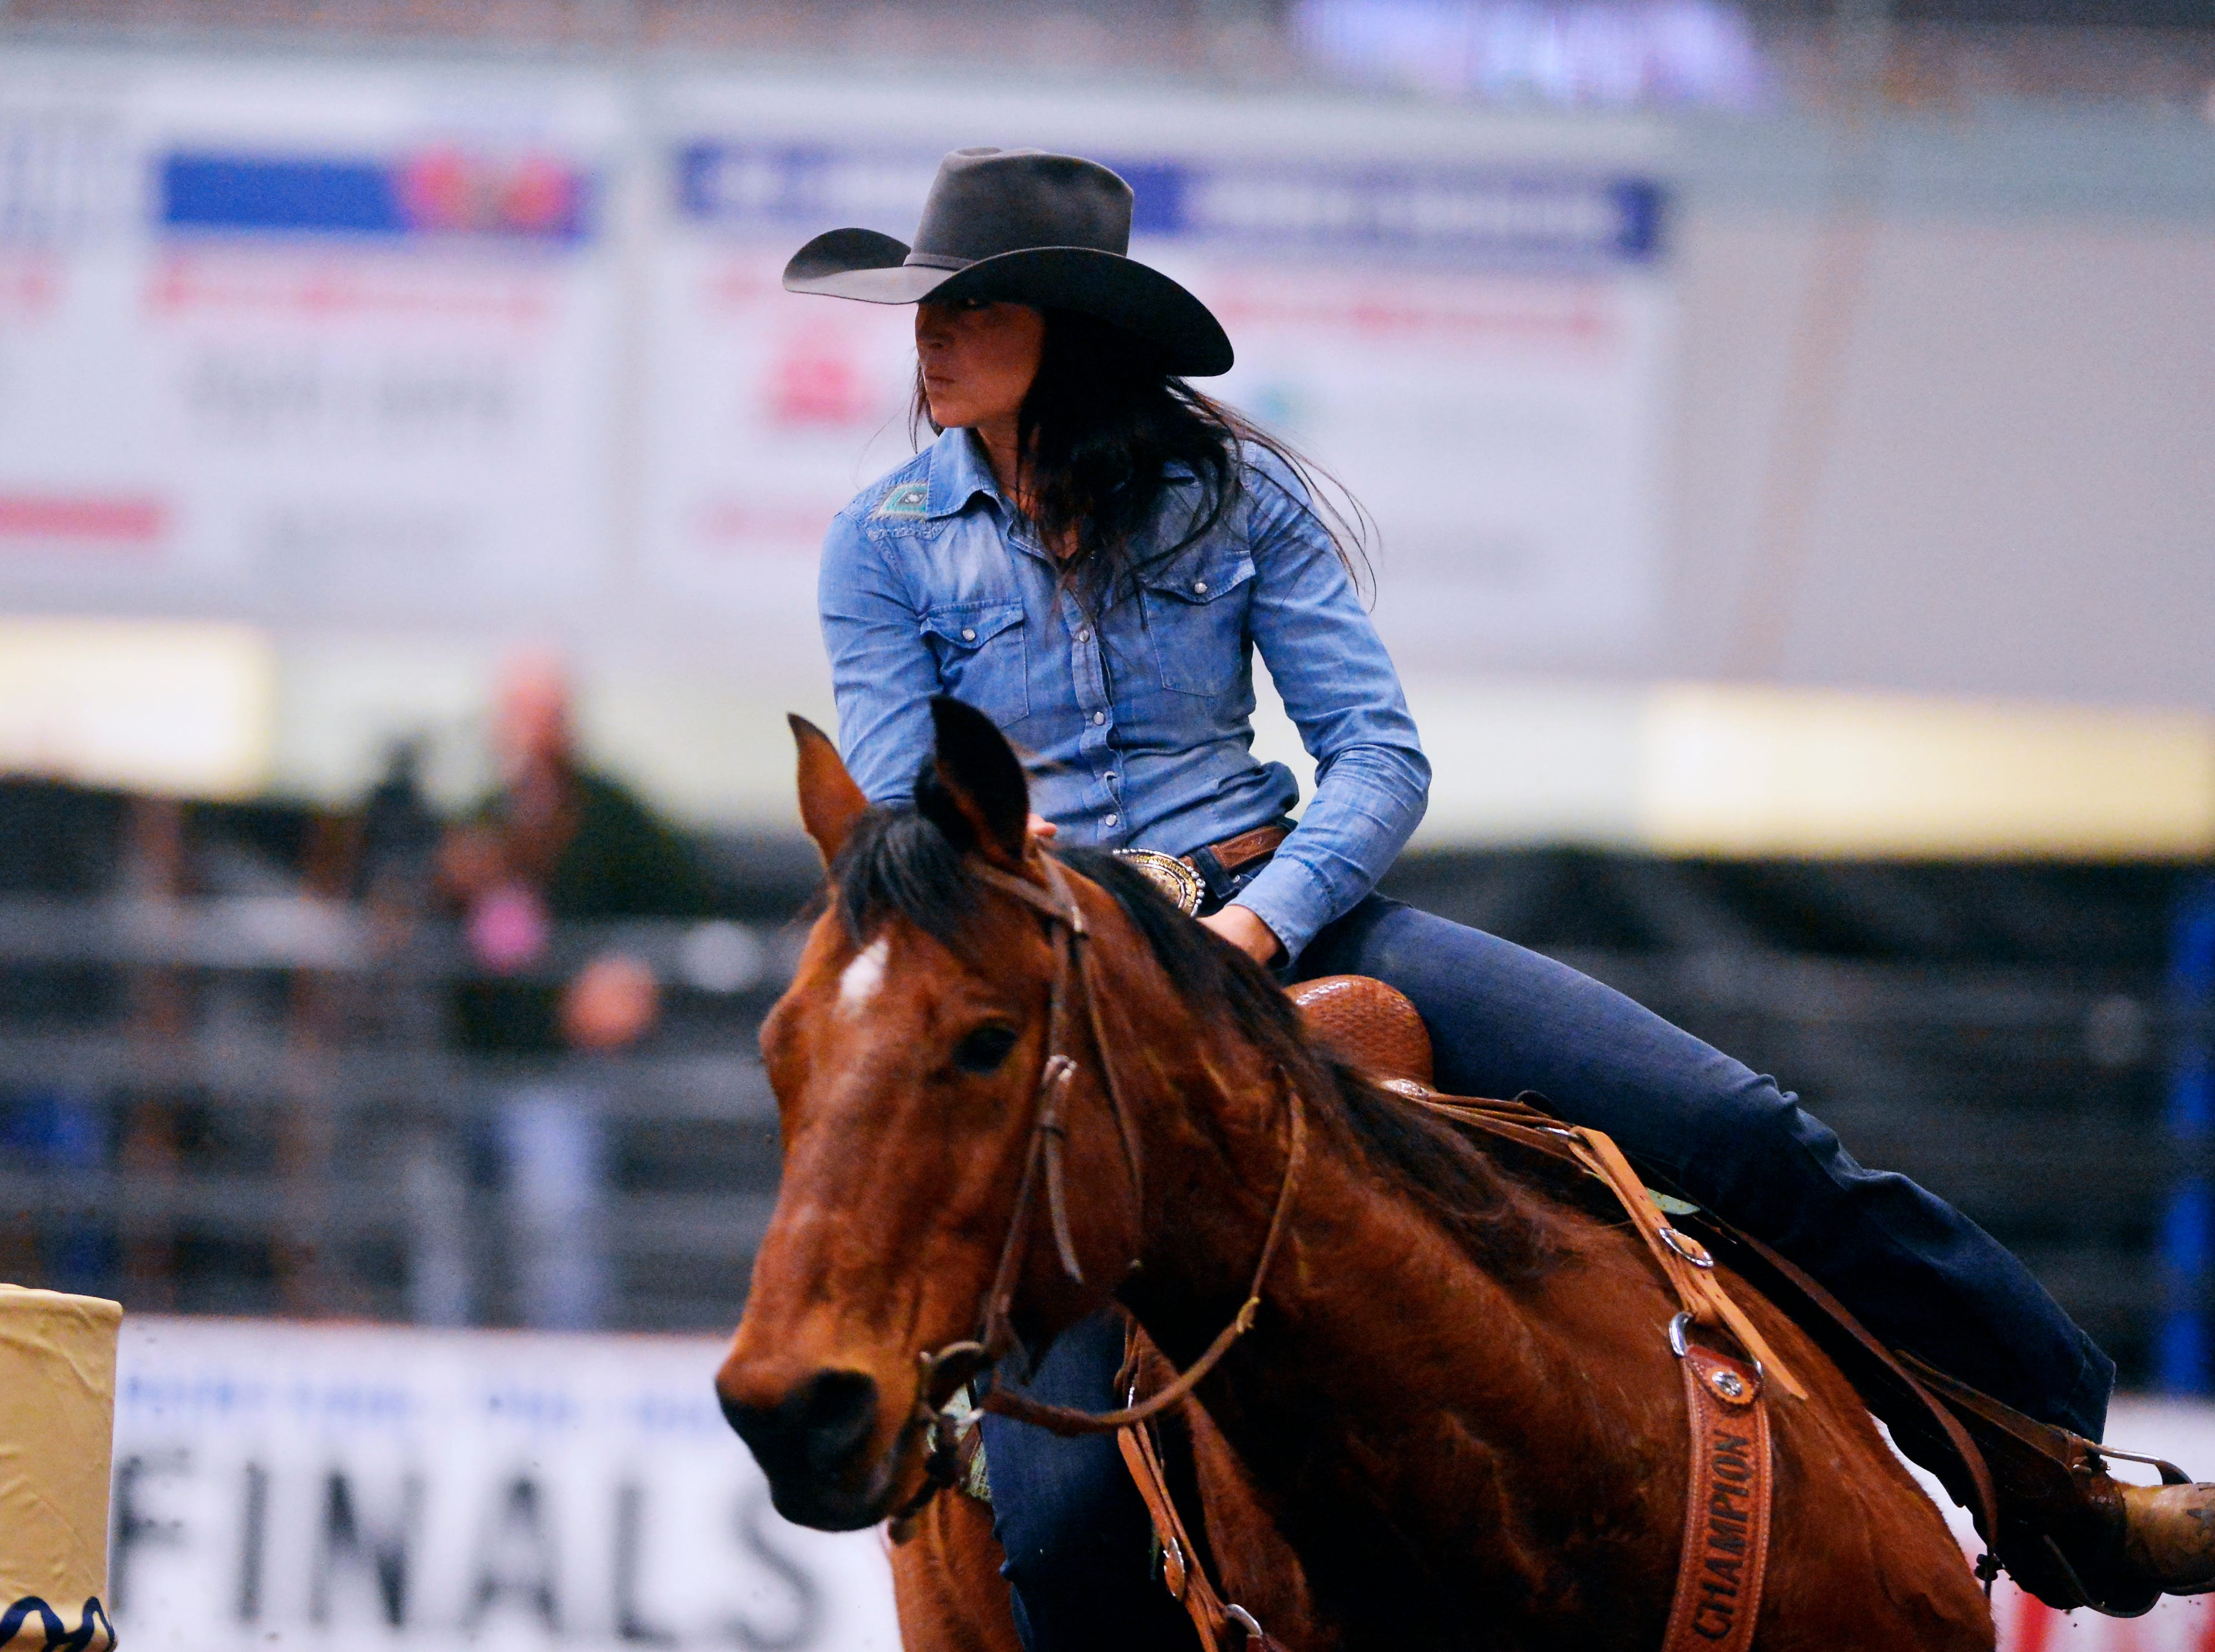 Hannah Sharon makes a 13.20 second run in the barrel racing event during the Montana Pro Rodeo Circuit Finals in the Pacific Steel and Recycling Four Seasons Arena, Friday, January 11, 2019.